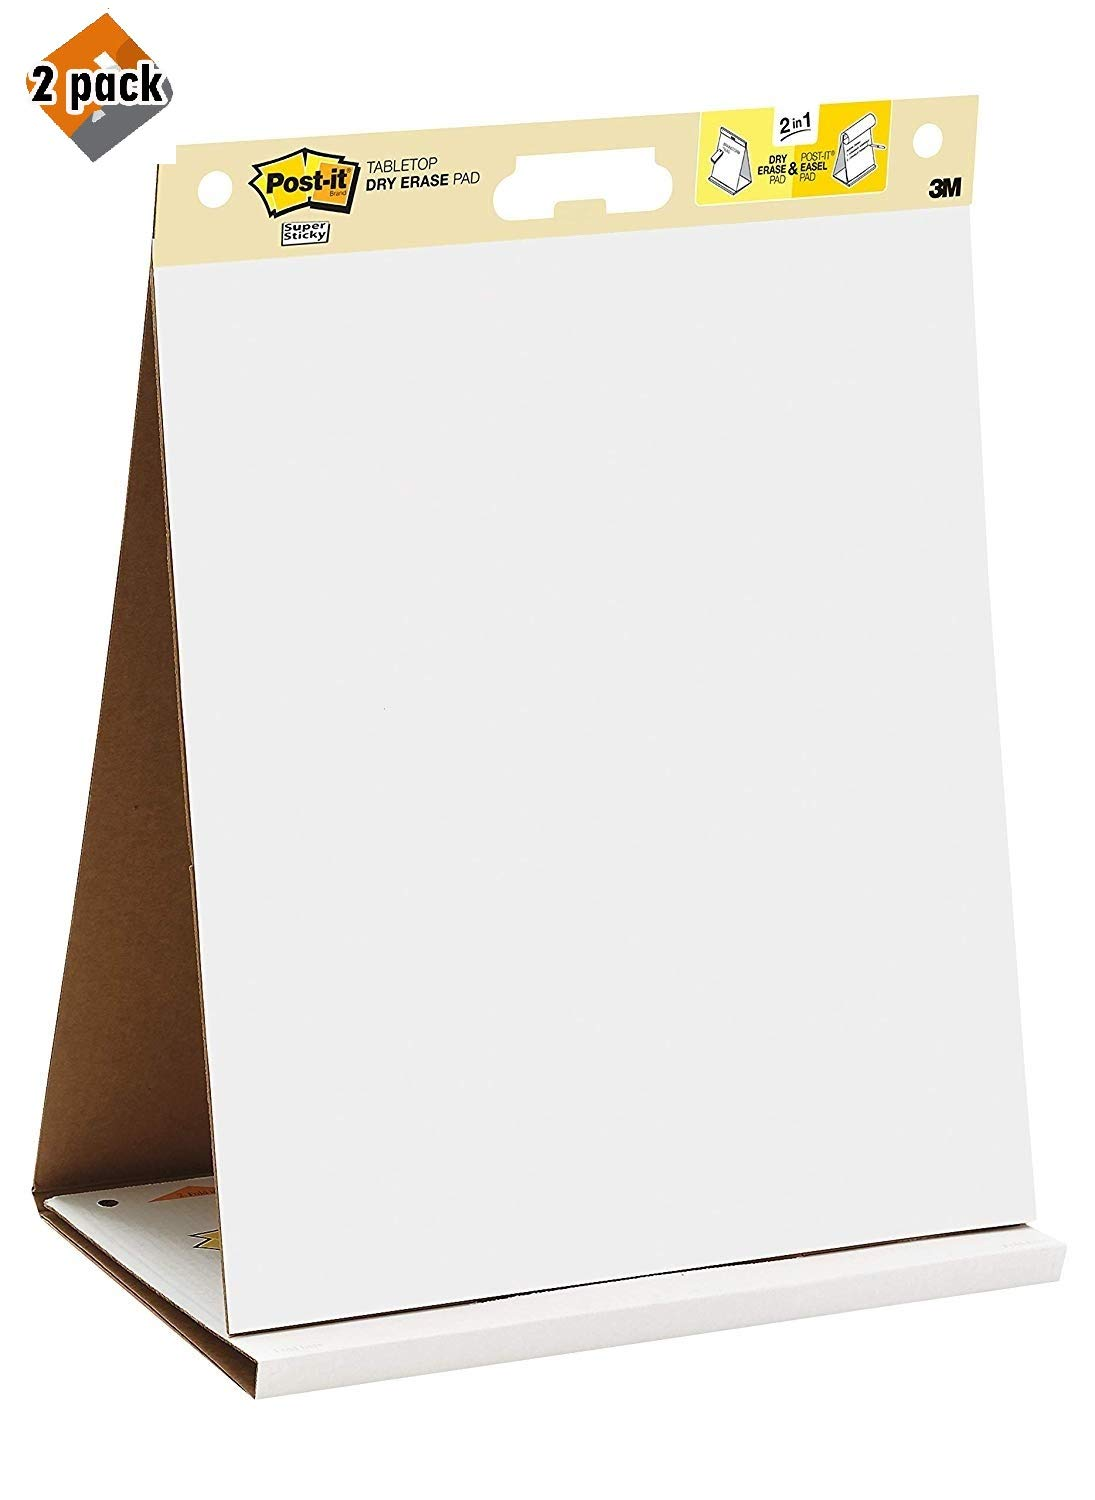 Post-it Super Sticky Tabletop Easel Pad, 20 x 23 Inches, 20 Sheets/Pad, 1 Pad (563R), Portable White Premium Self Stick Flip Chart Paper, Built-in Easel Stand, 2 Pack by Post-it